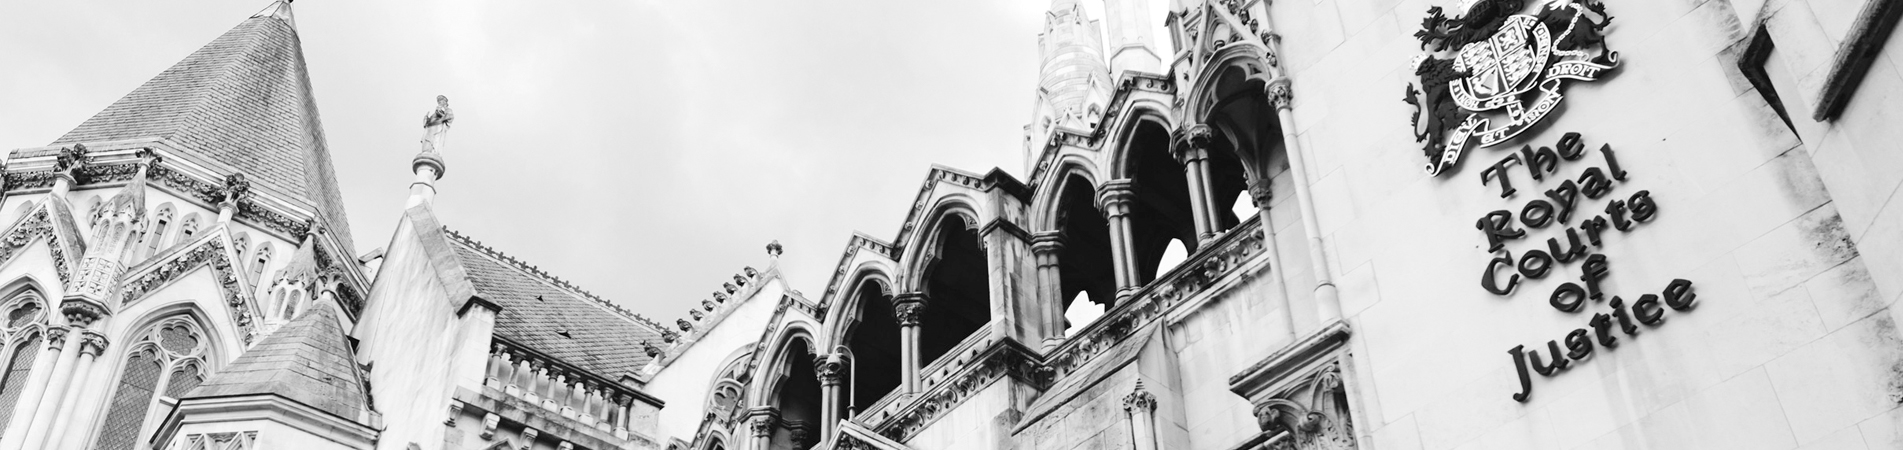 Black and White Image of the Top of The Royal Courts of Justice